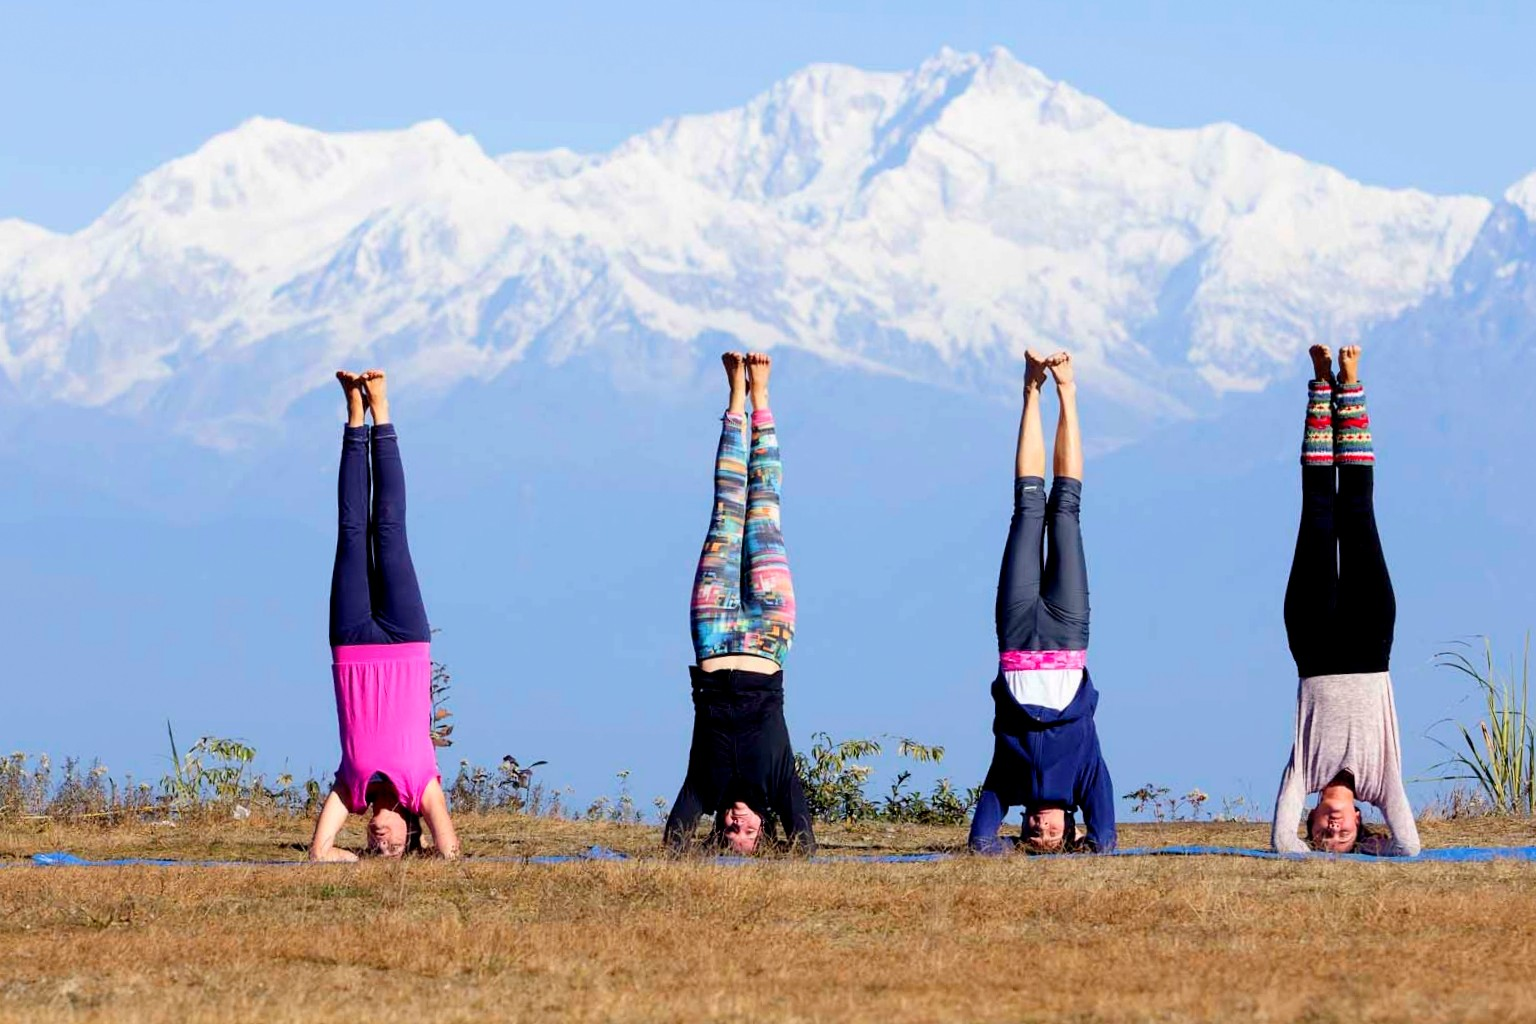 Everything You Need to Know About the Yoga and Volunteer Adventure in India